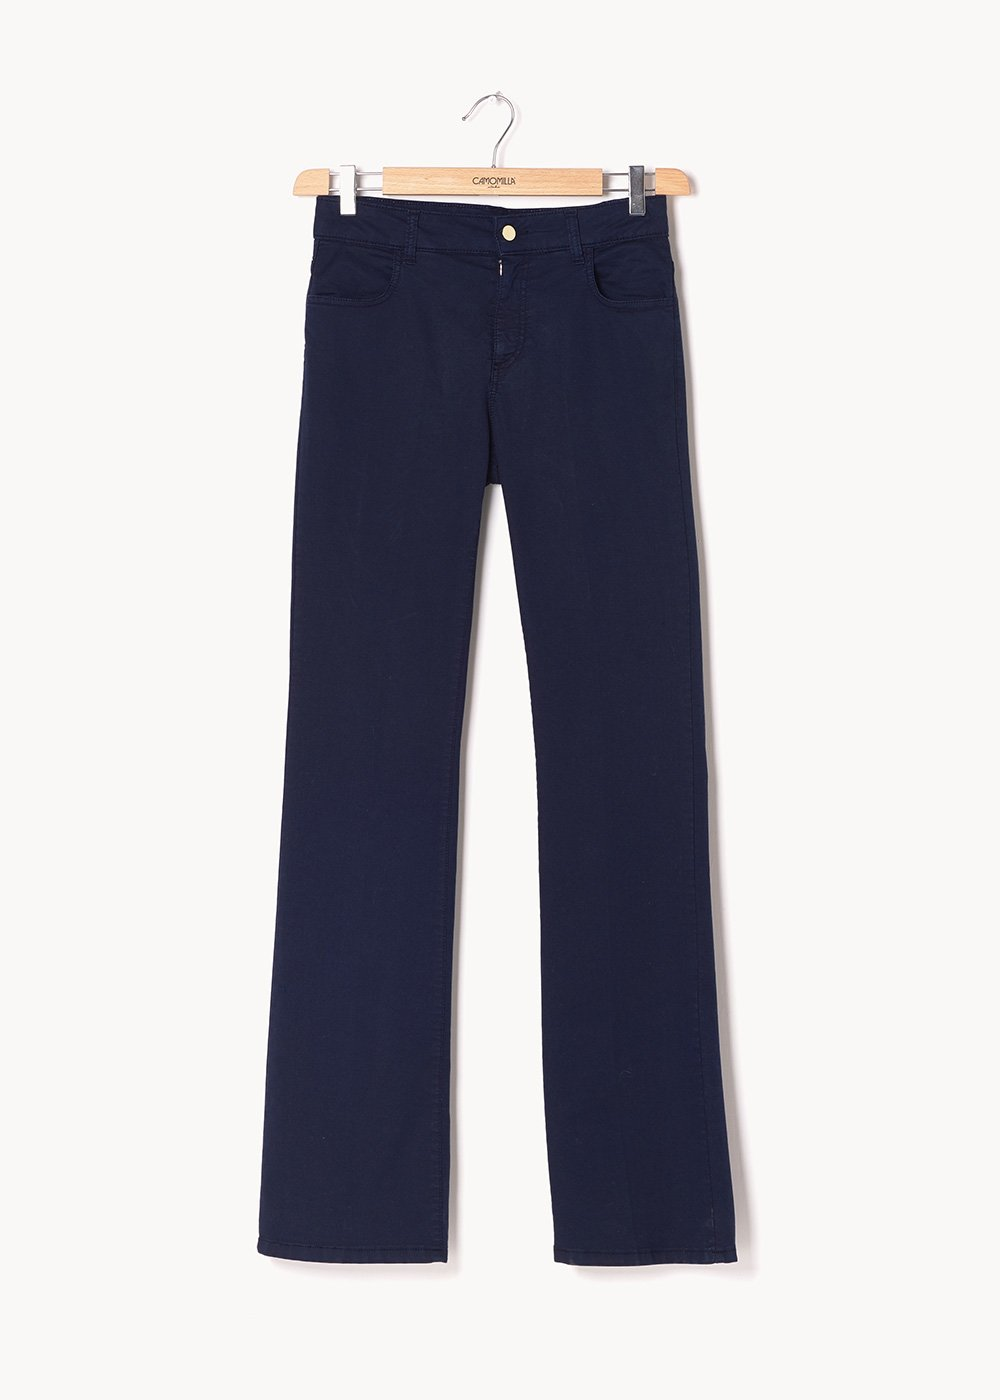 Pantaloni modello Cindy gamba larga - Blue - Donna